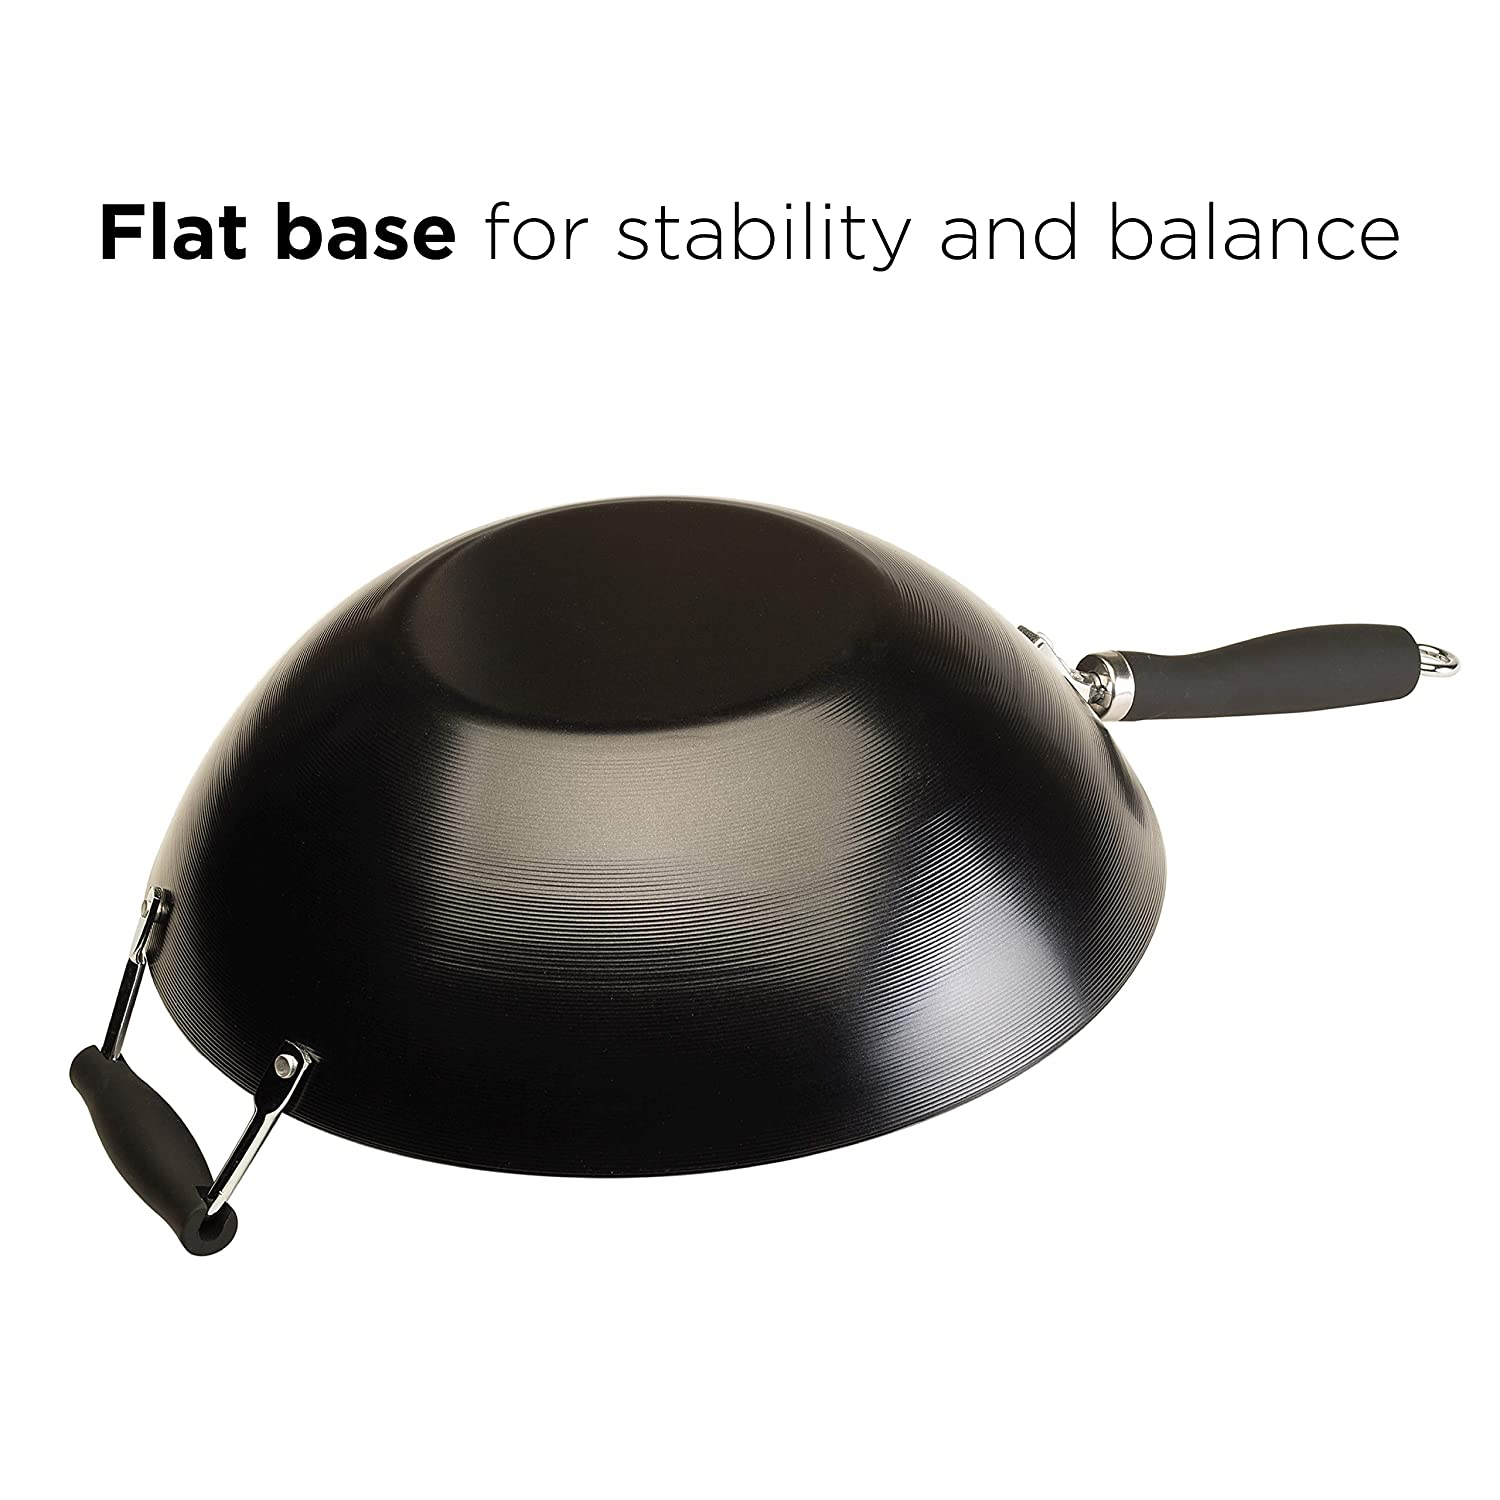 Ecolution Non-Stick Carbon Steel Wok with Soft Touch Riveted Handle 8,Black